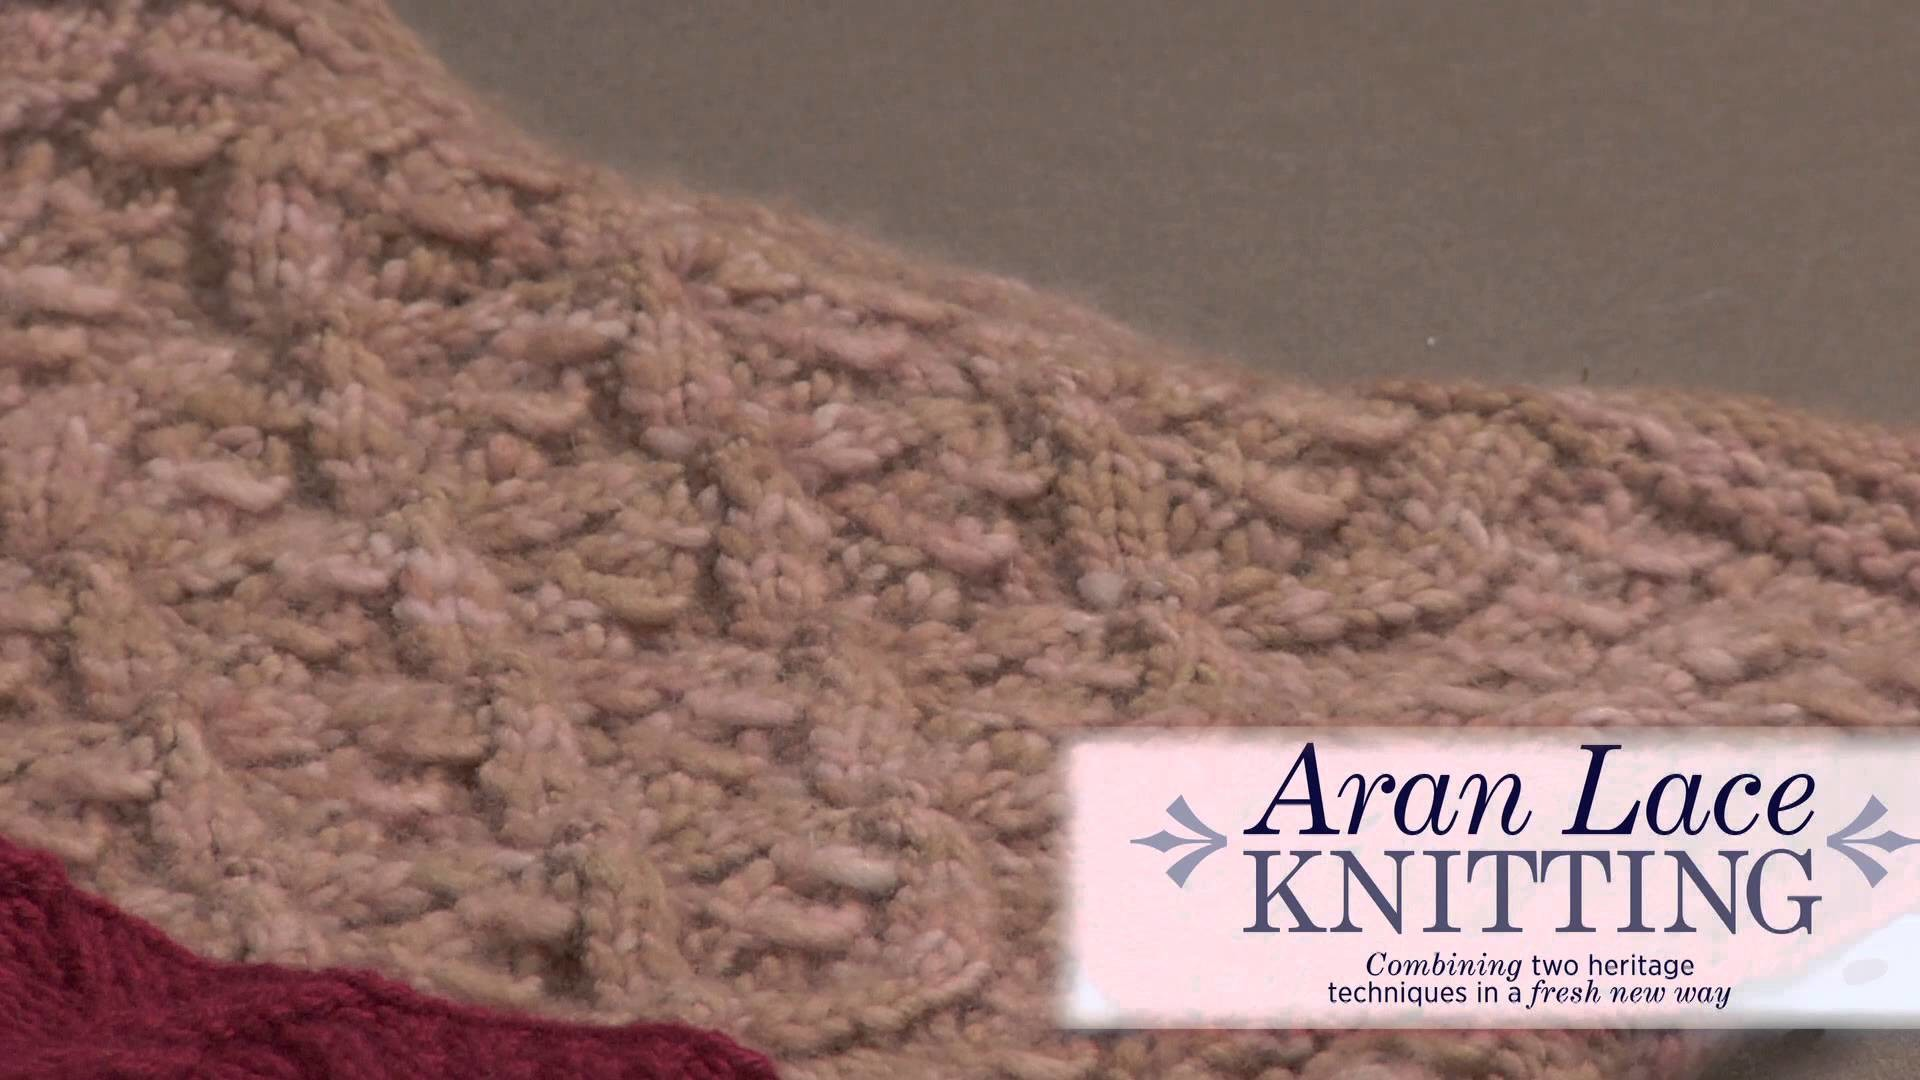 an analysis of the technique of lace a combination of weaving crochet or knitting I used to crochet doilies and tablecloths with lace weight i now know how to knit does lace weight come in speckled colorways i really would love to knit a lace weight speckled shawl for the warmer months here in texas.